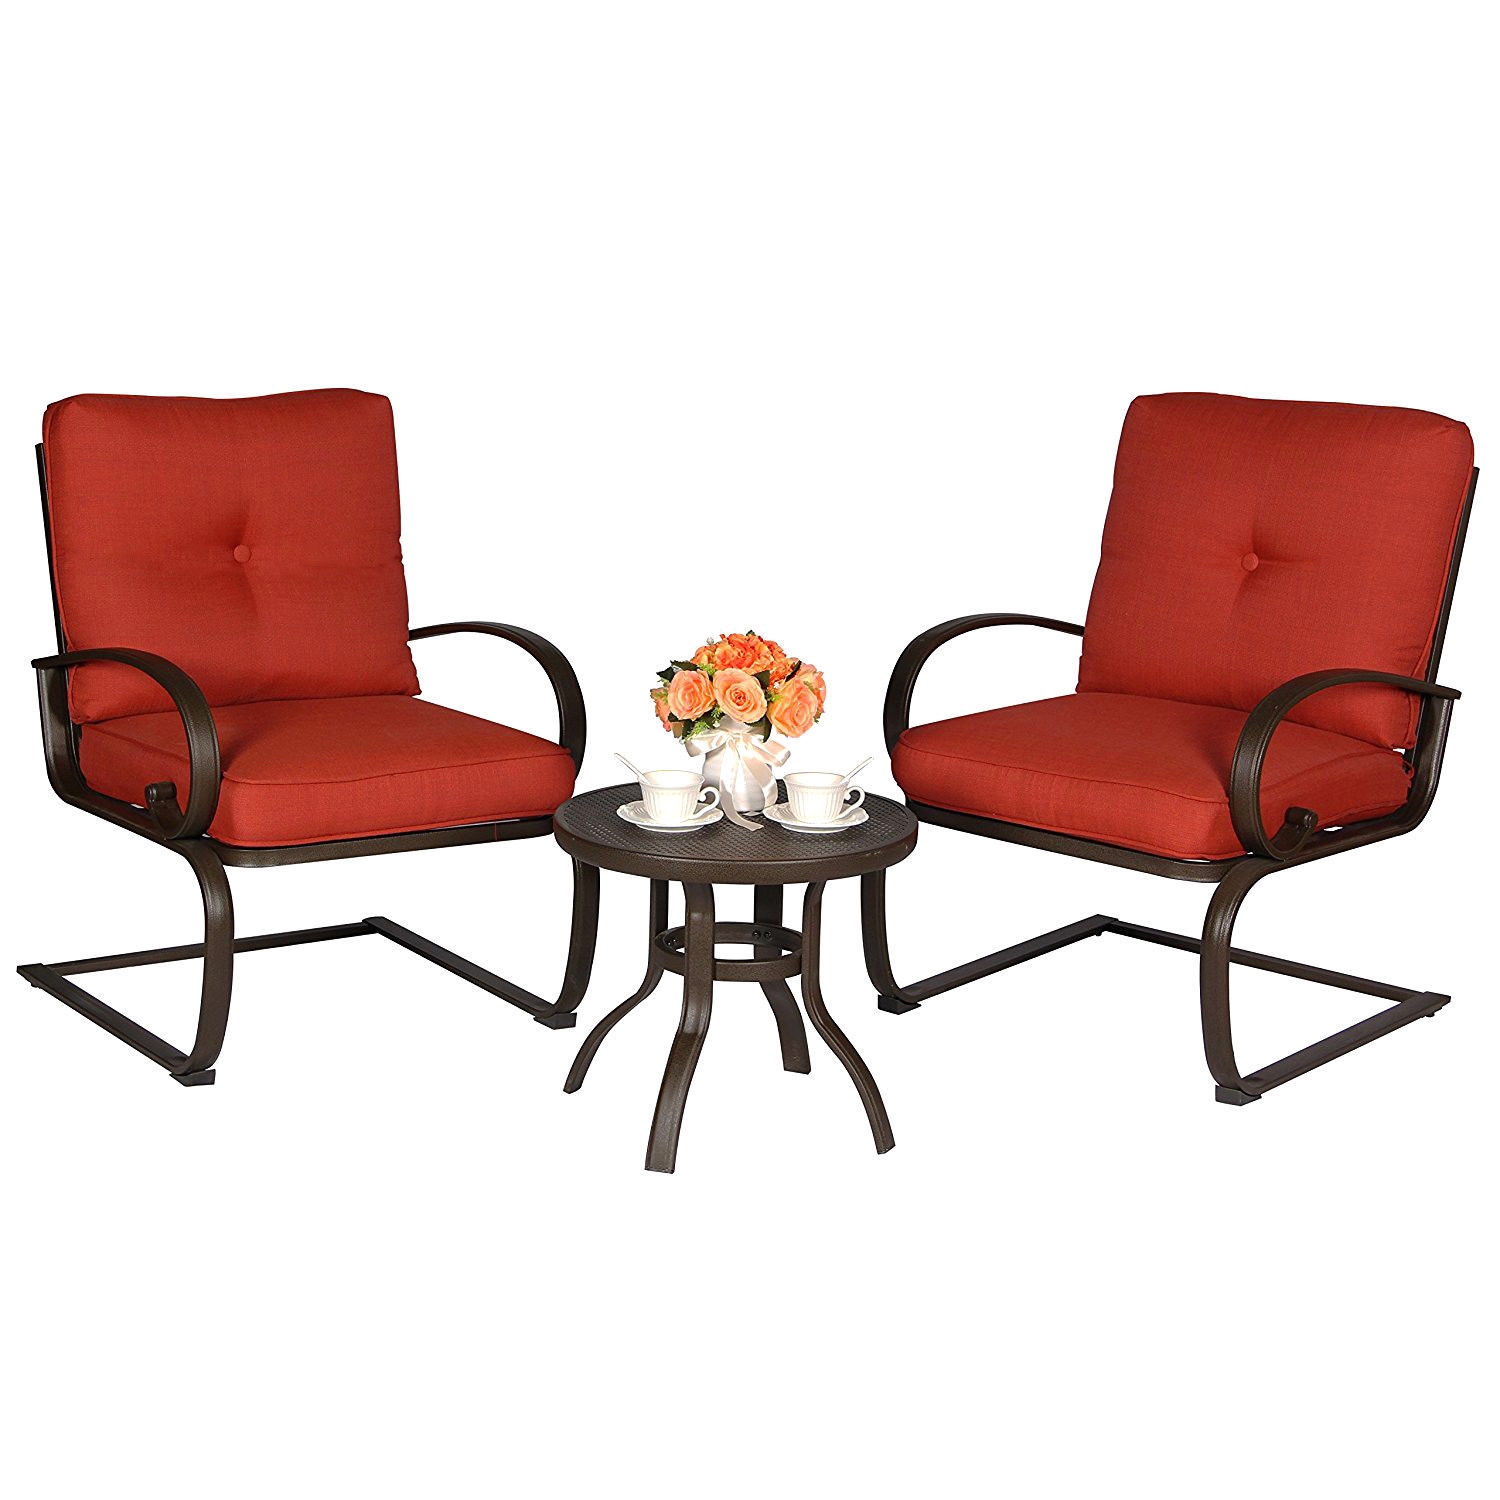 5 PC Cushion Outdoor Furniture Garden Patio Wrought Iron Dining Conversation Set